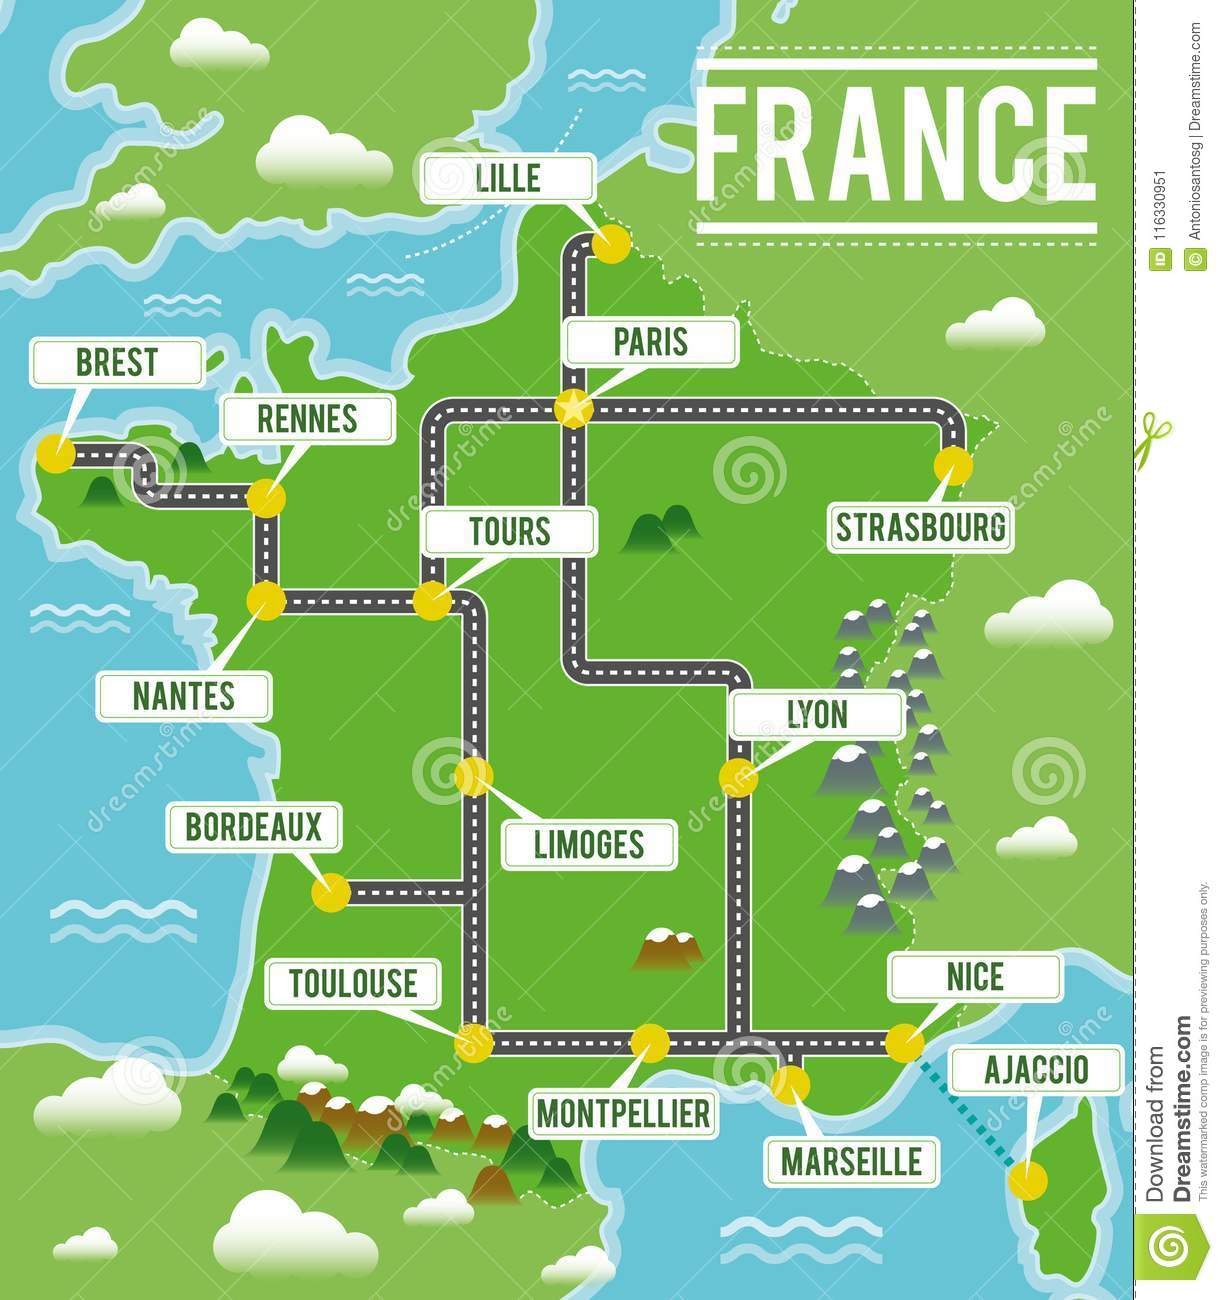 A Map Of France With Cities.Cartoon Vector Map Of France Travel Illustration With French Main